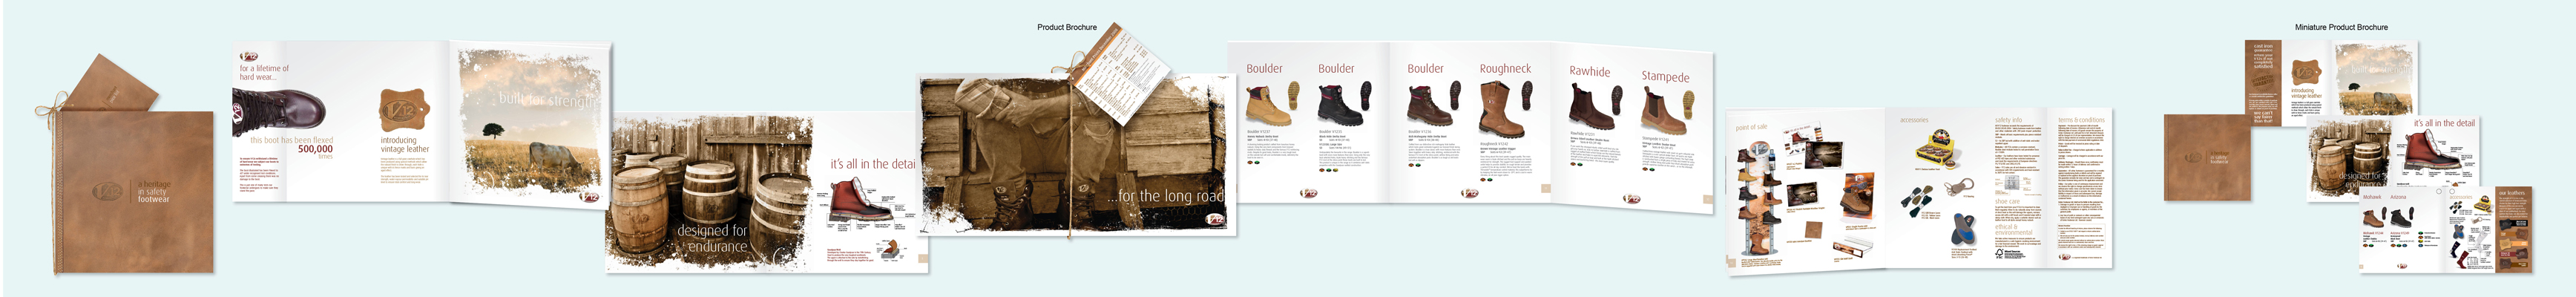 Catalogues & Brochures for Vtech Footwear